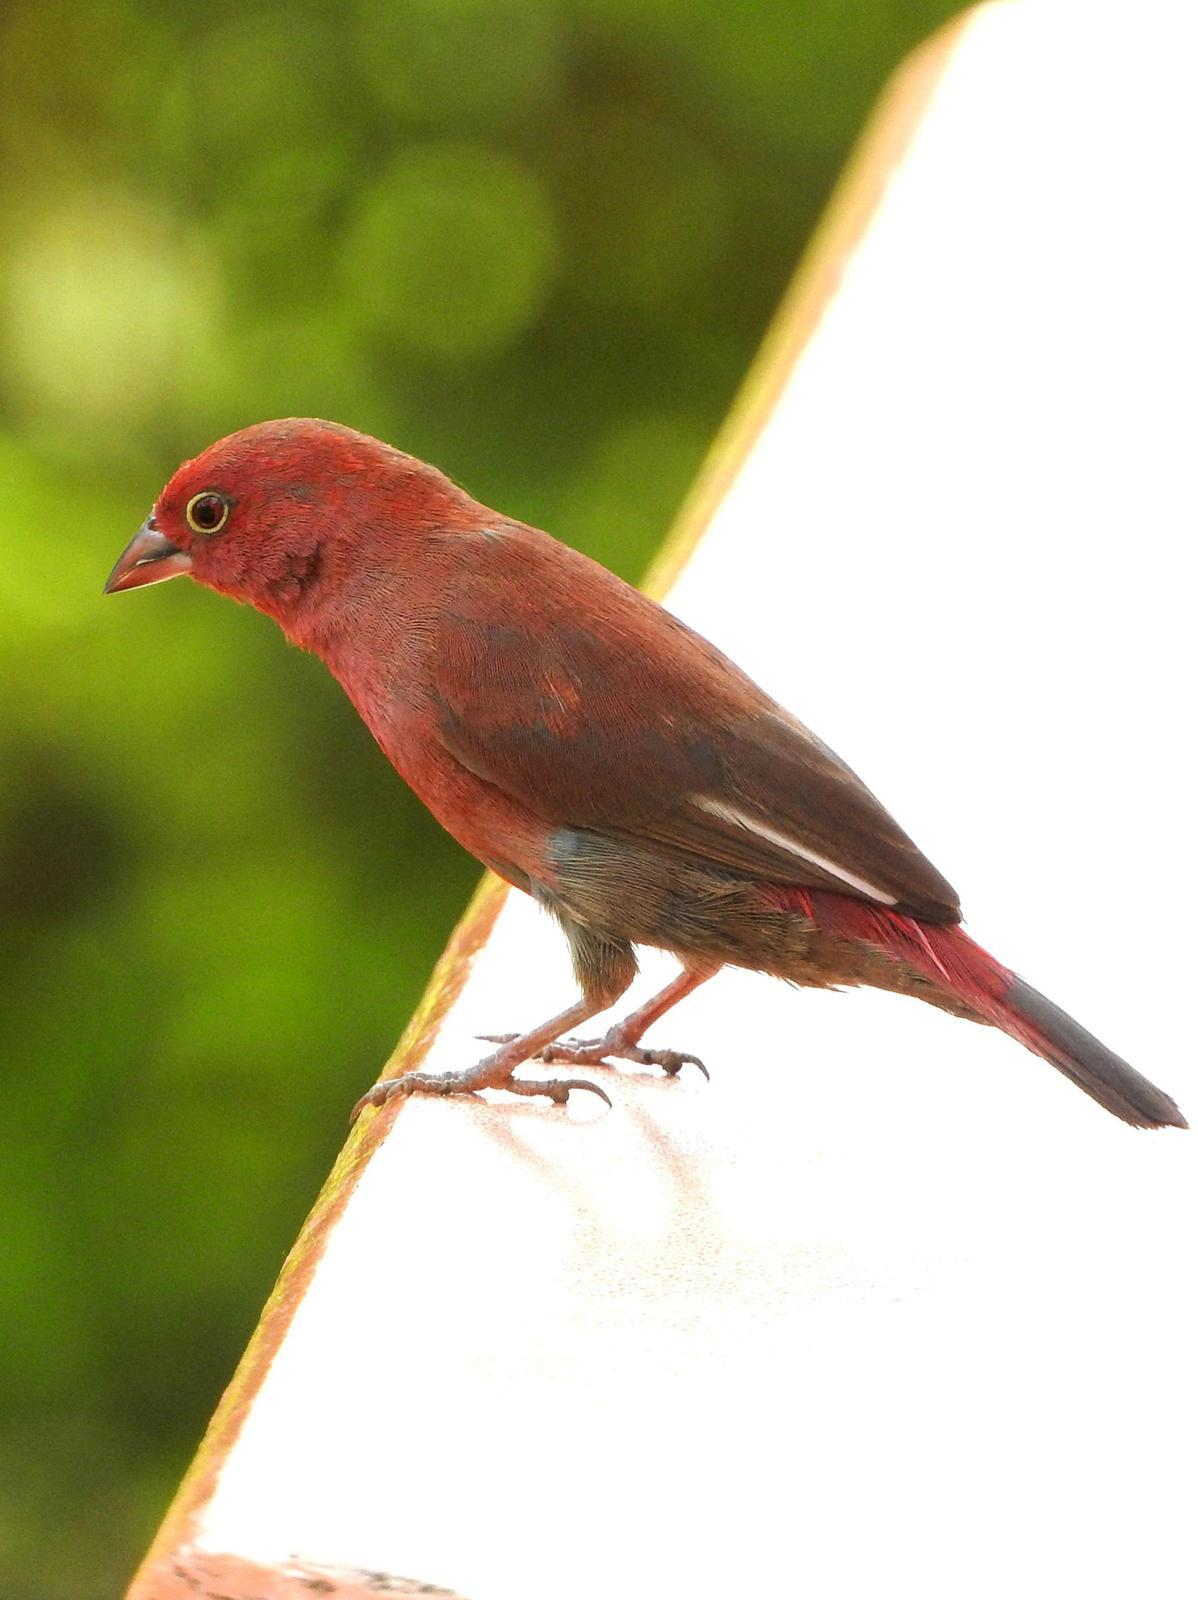 Red-billed Firefinch Photo by Todd A. Watkins